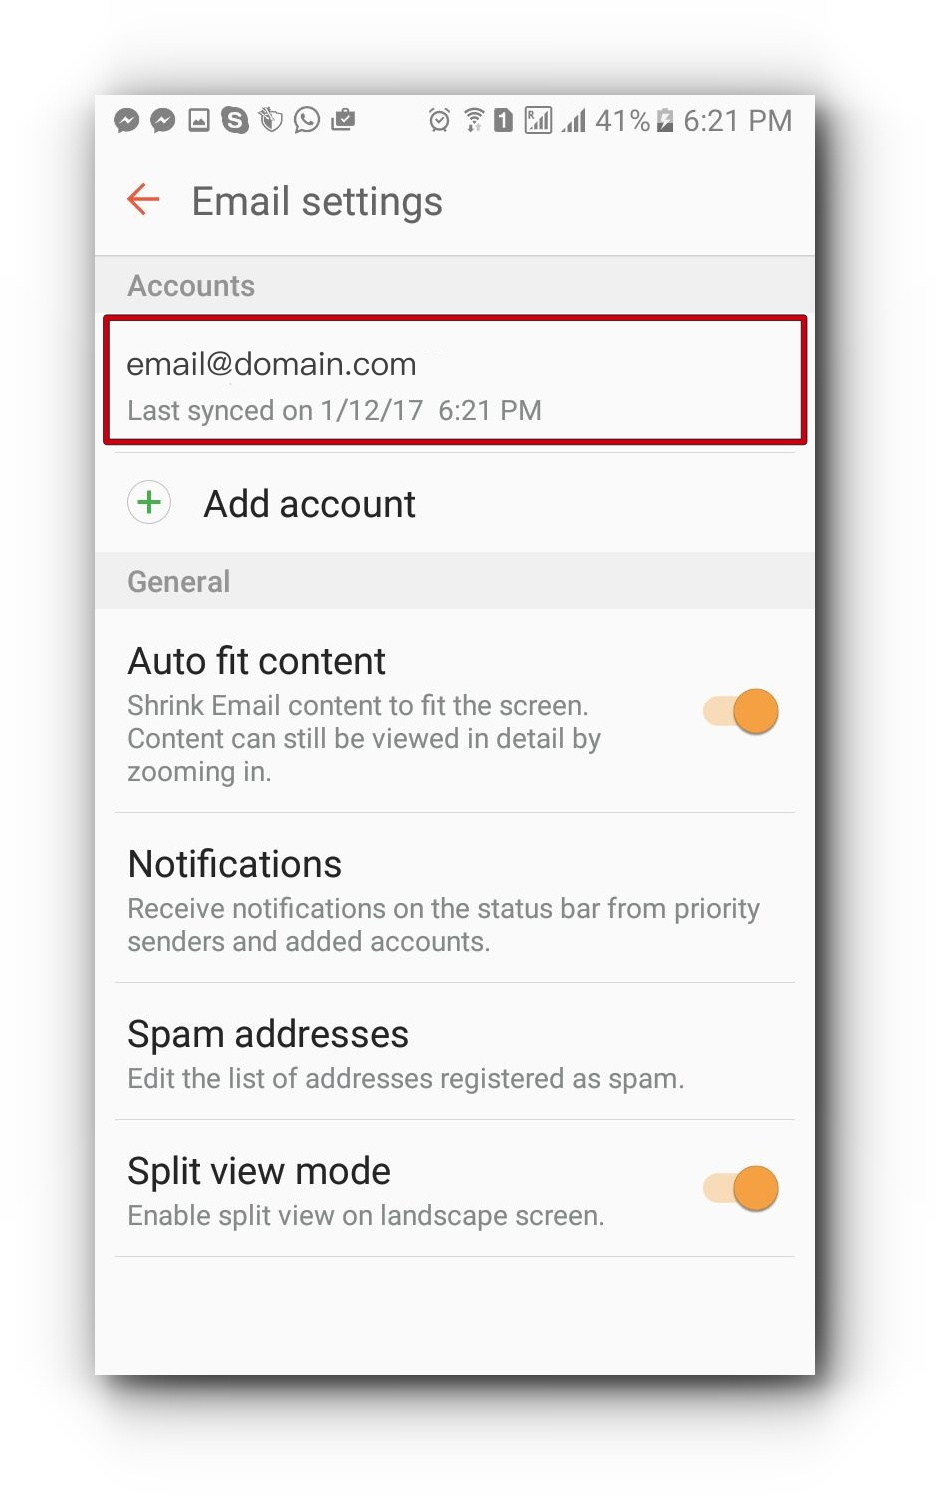 samsung-email-settings